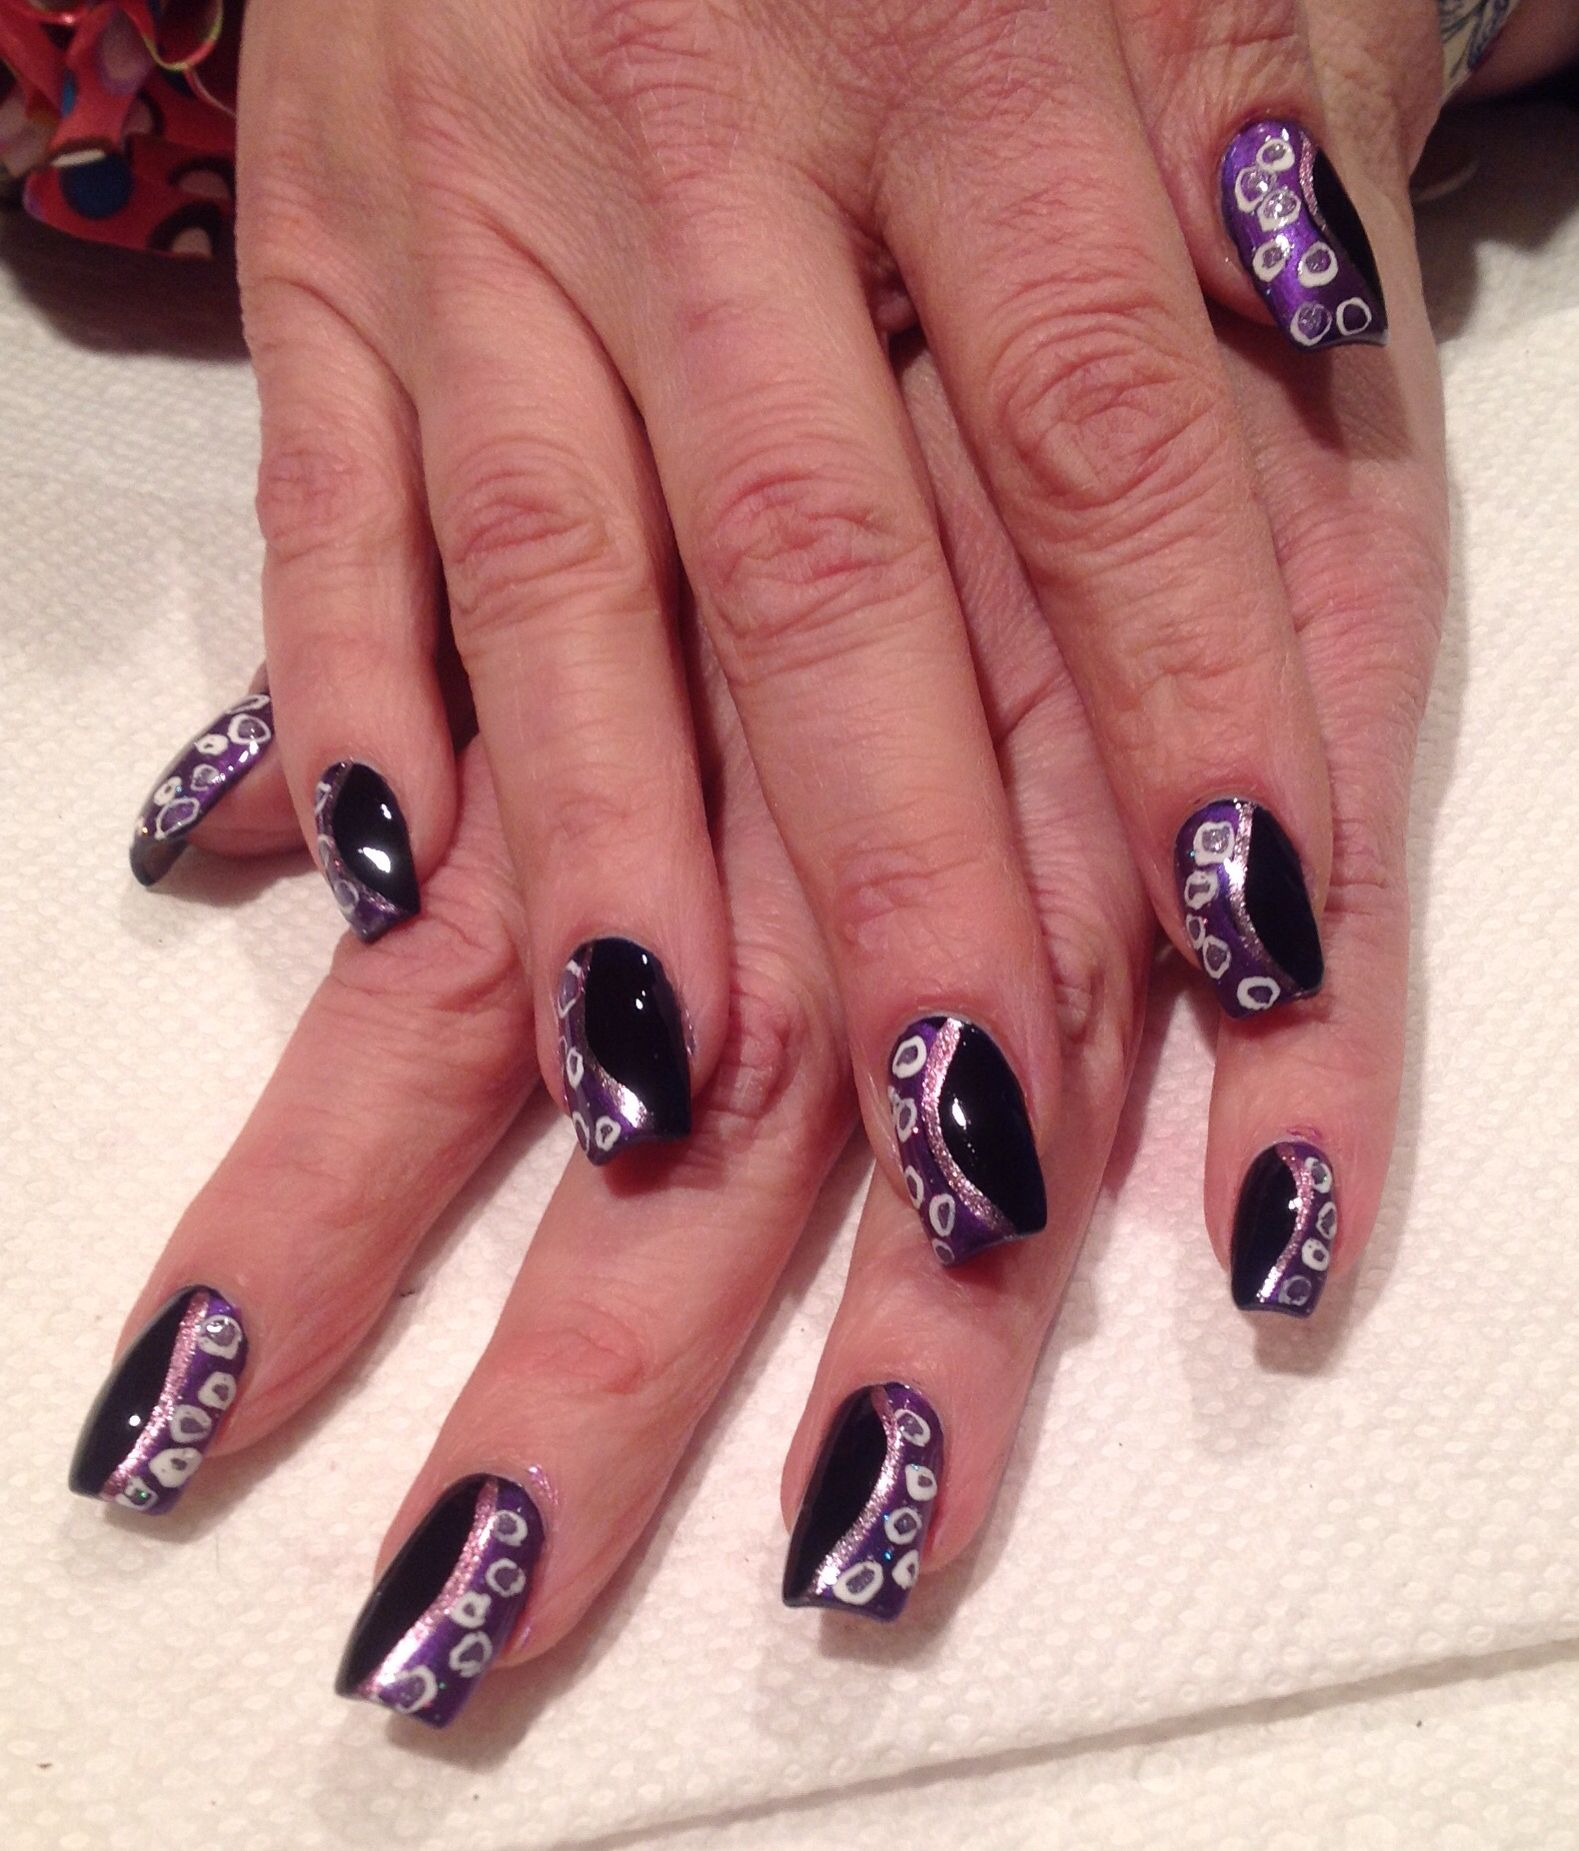 Ursula nails - The Little Mermaid | Nails by Traci | Pinterest